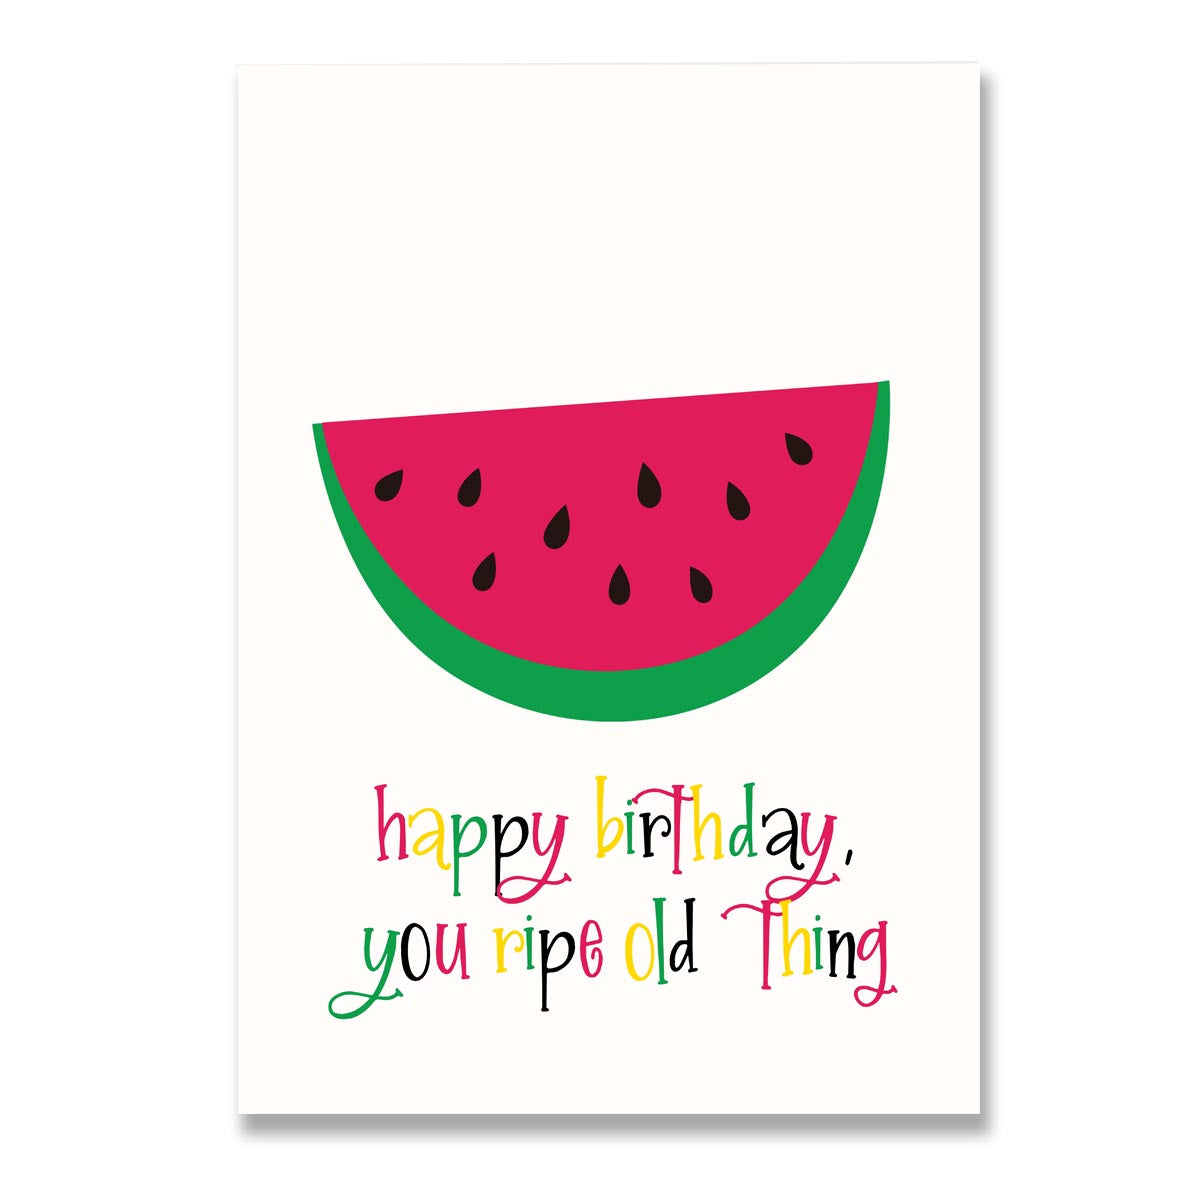 Happy Birthday You Ripe Old Thing Watermelon Card-Greeting Cards-Mode Prints